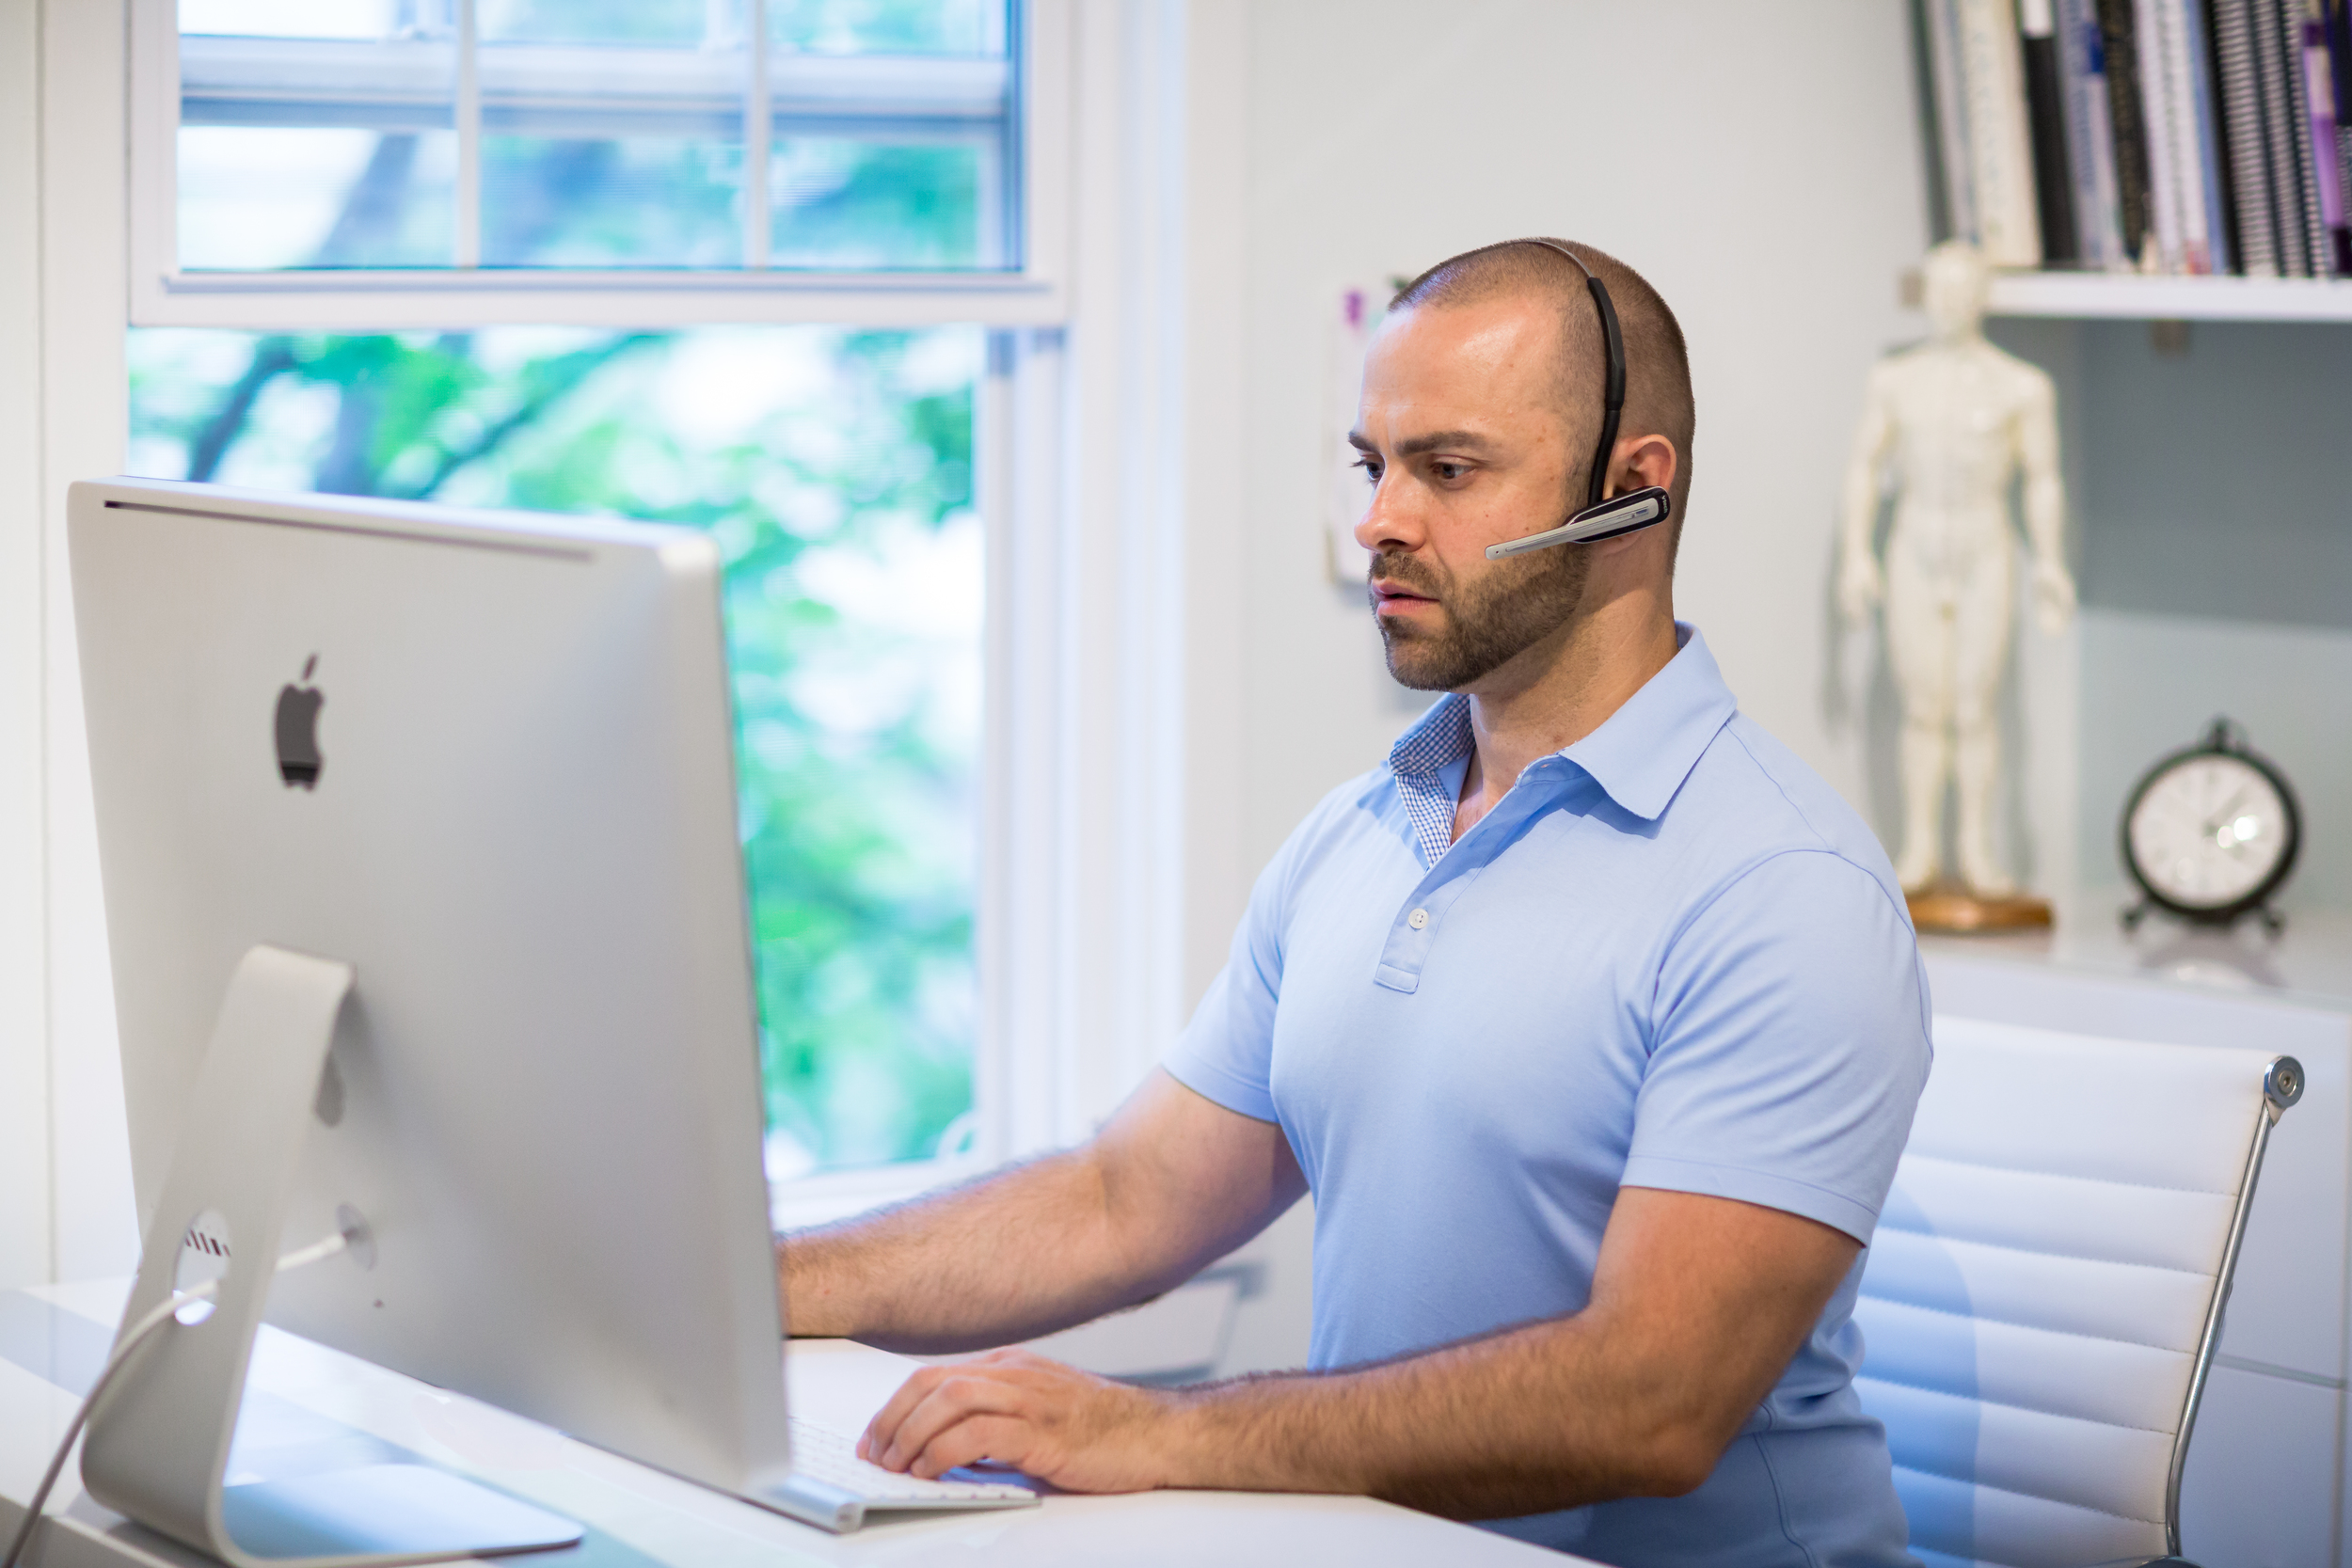 DO:  When working at your desk, use a hands free head set if talking on the phone for any longer than a few minutes. There are a lot of products that attache onto various phone devices. If you need a recommendation,  contact me.